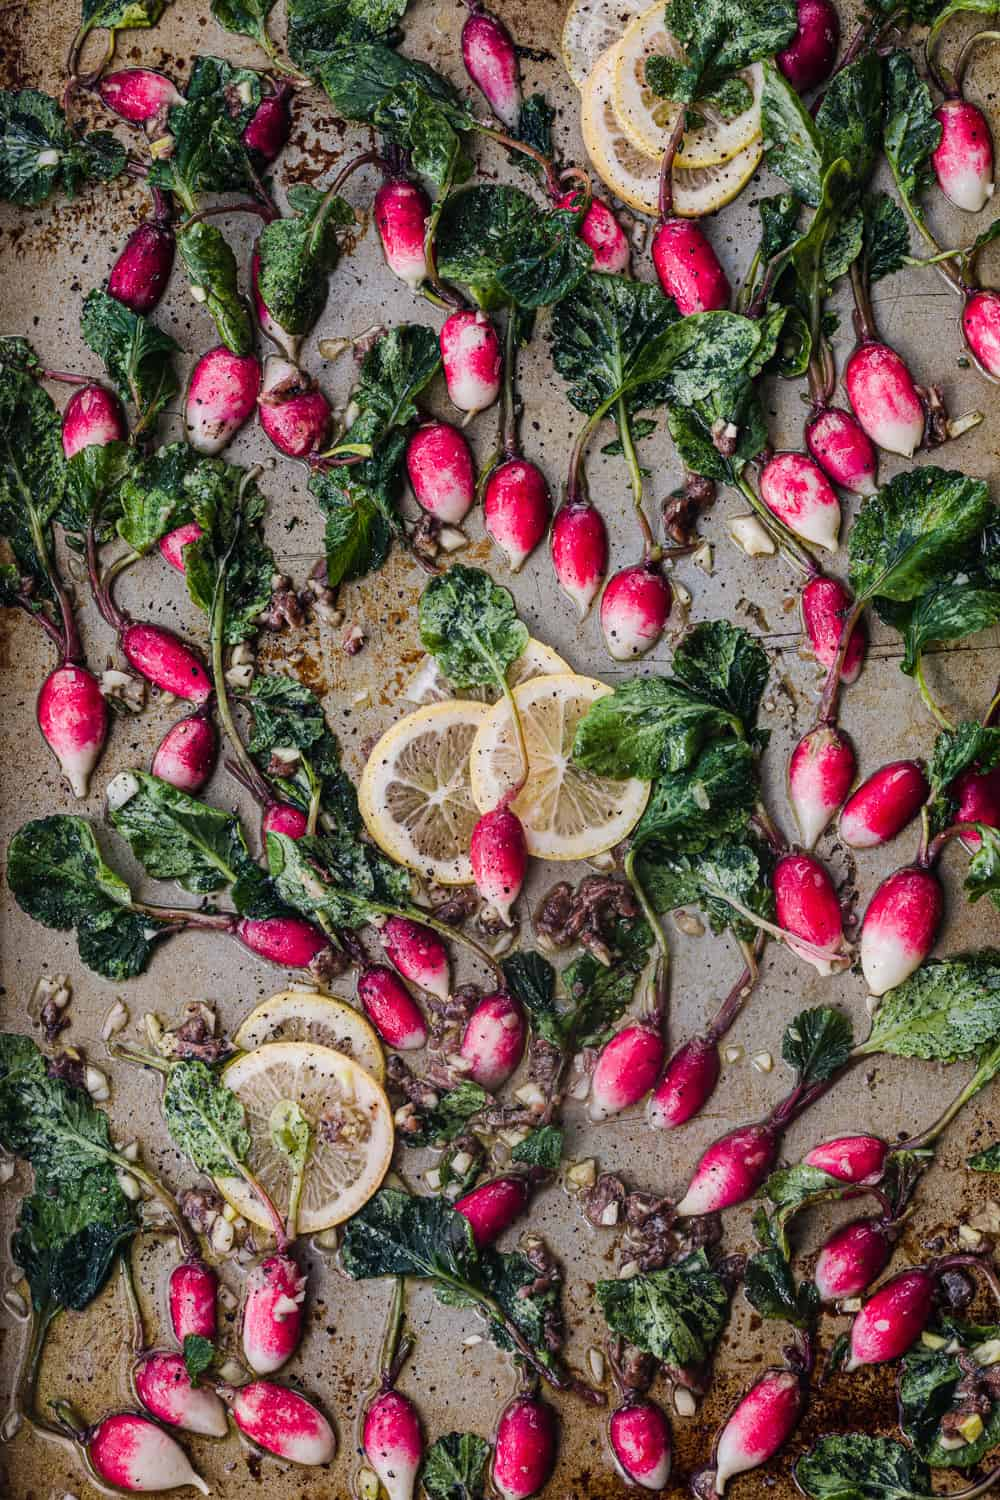 small French breakfast radishes cut in half and ready to be roasted; they are tossed with garlic, anchovies, lemon slices, olive oil, salt and pepper.